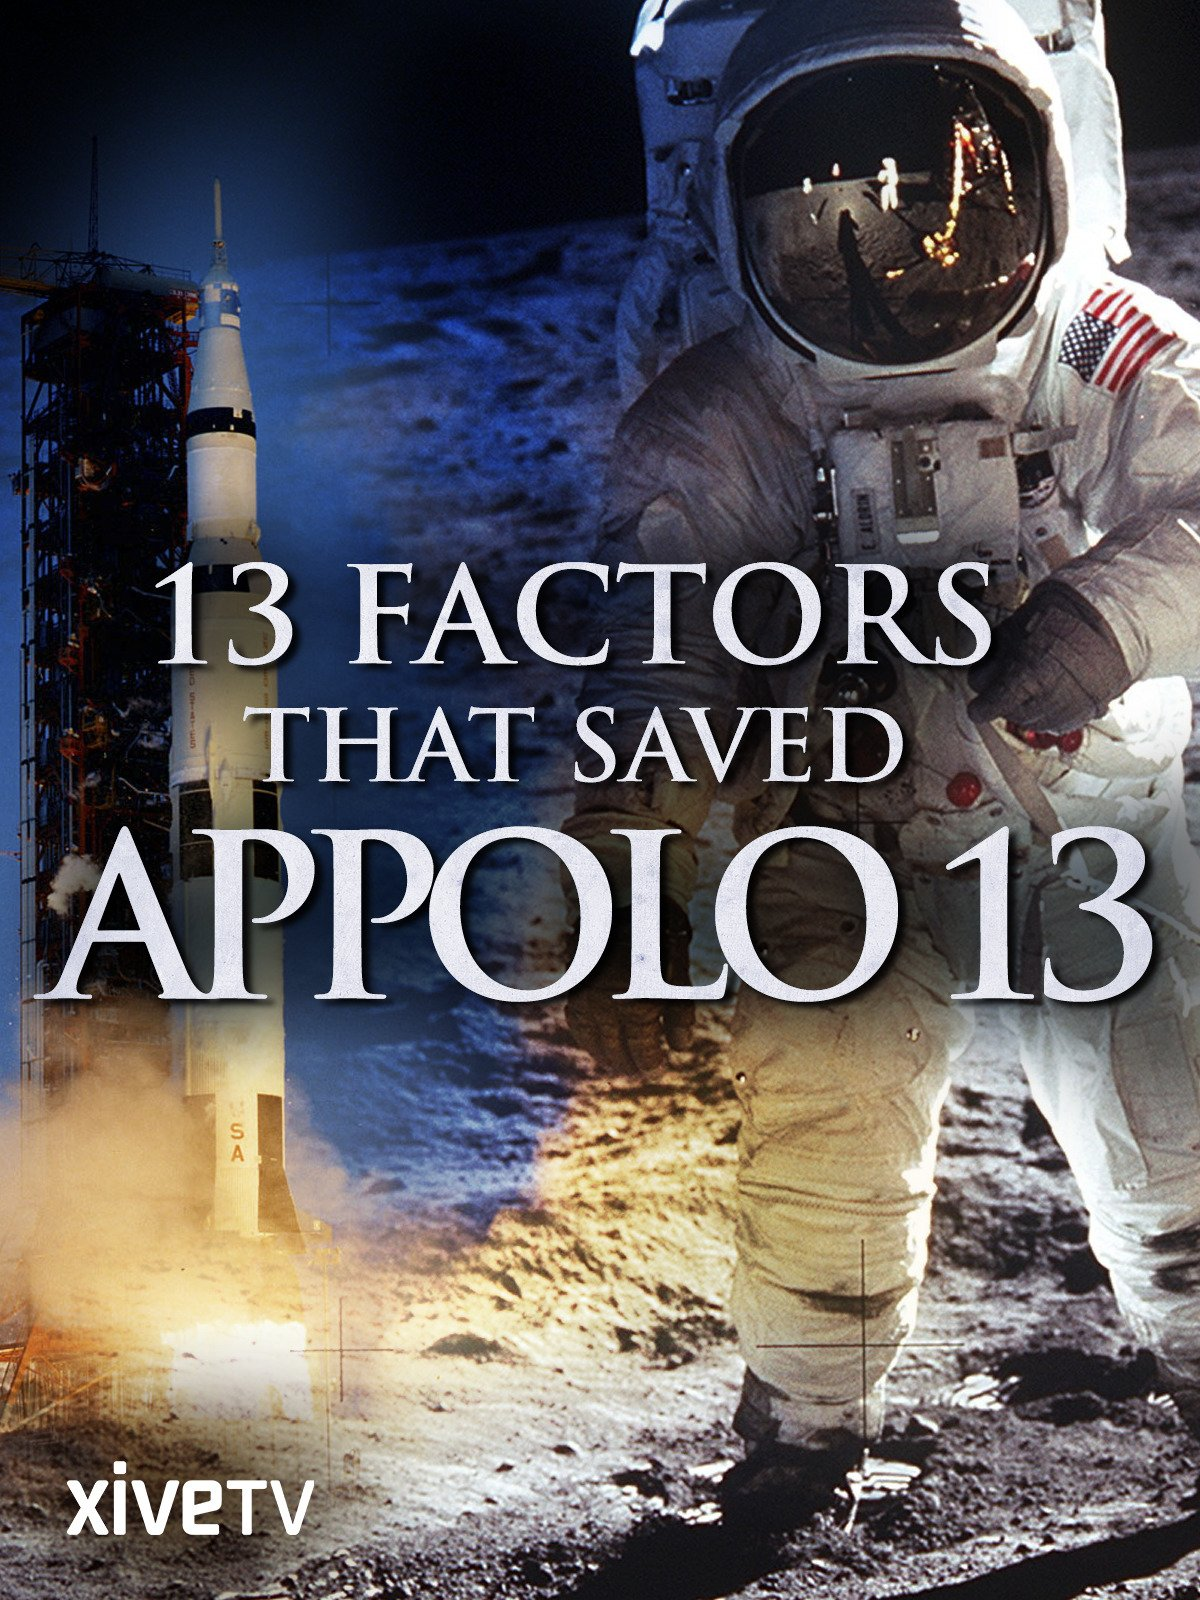 13 Factors that Saved Apollo 13 on Amazon Prime Video UK